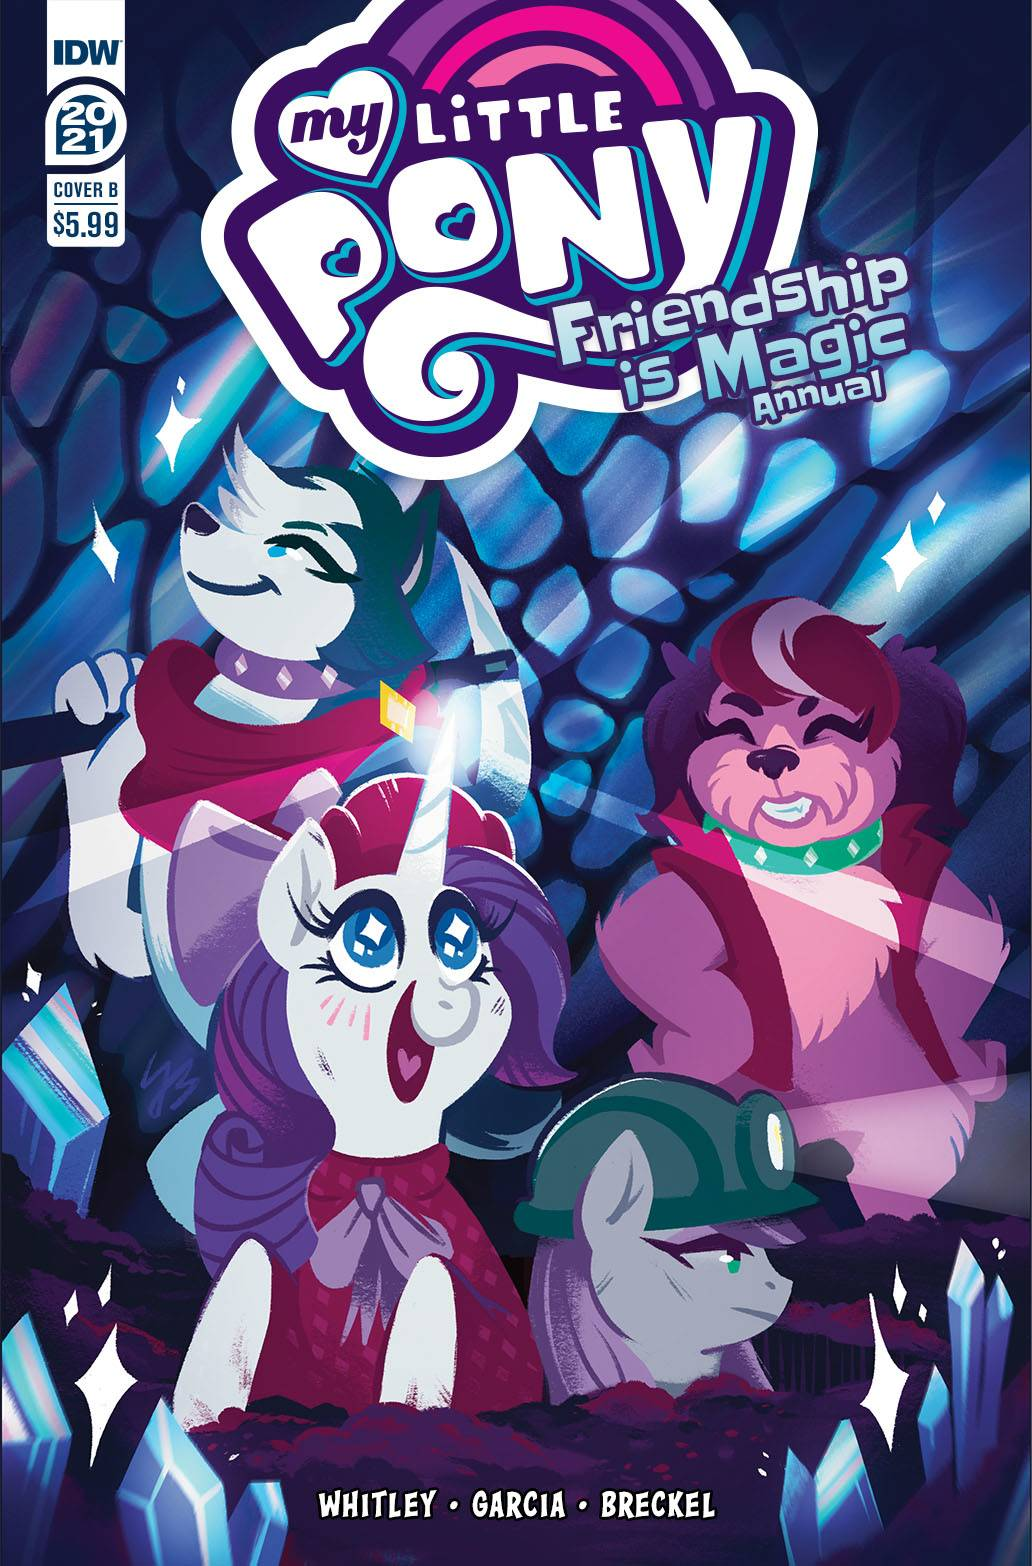 MY LITTLE PONY FRIENDSHIP IS MAGIC 2021 ANNUAL CVR B JUSTASU